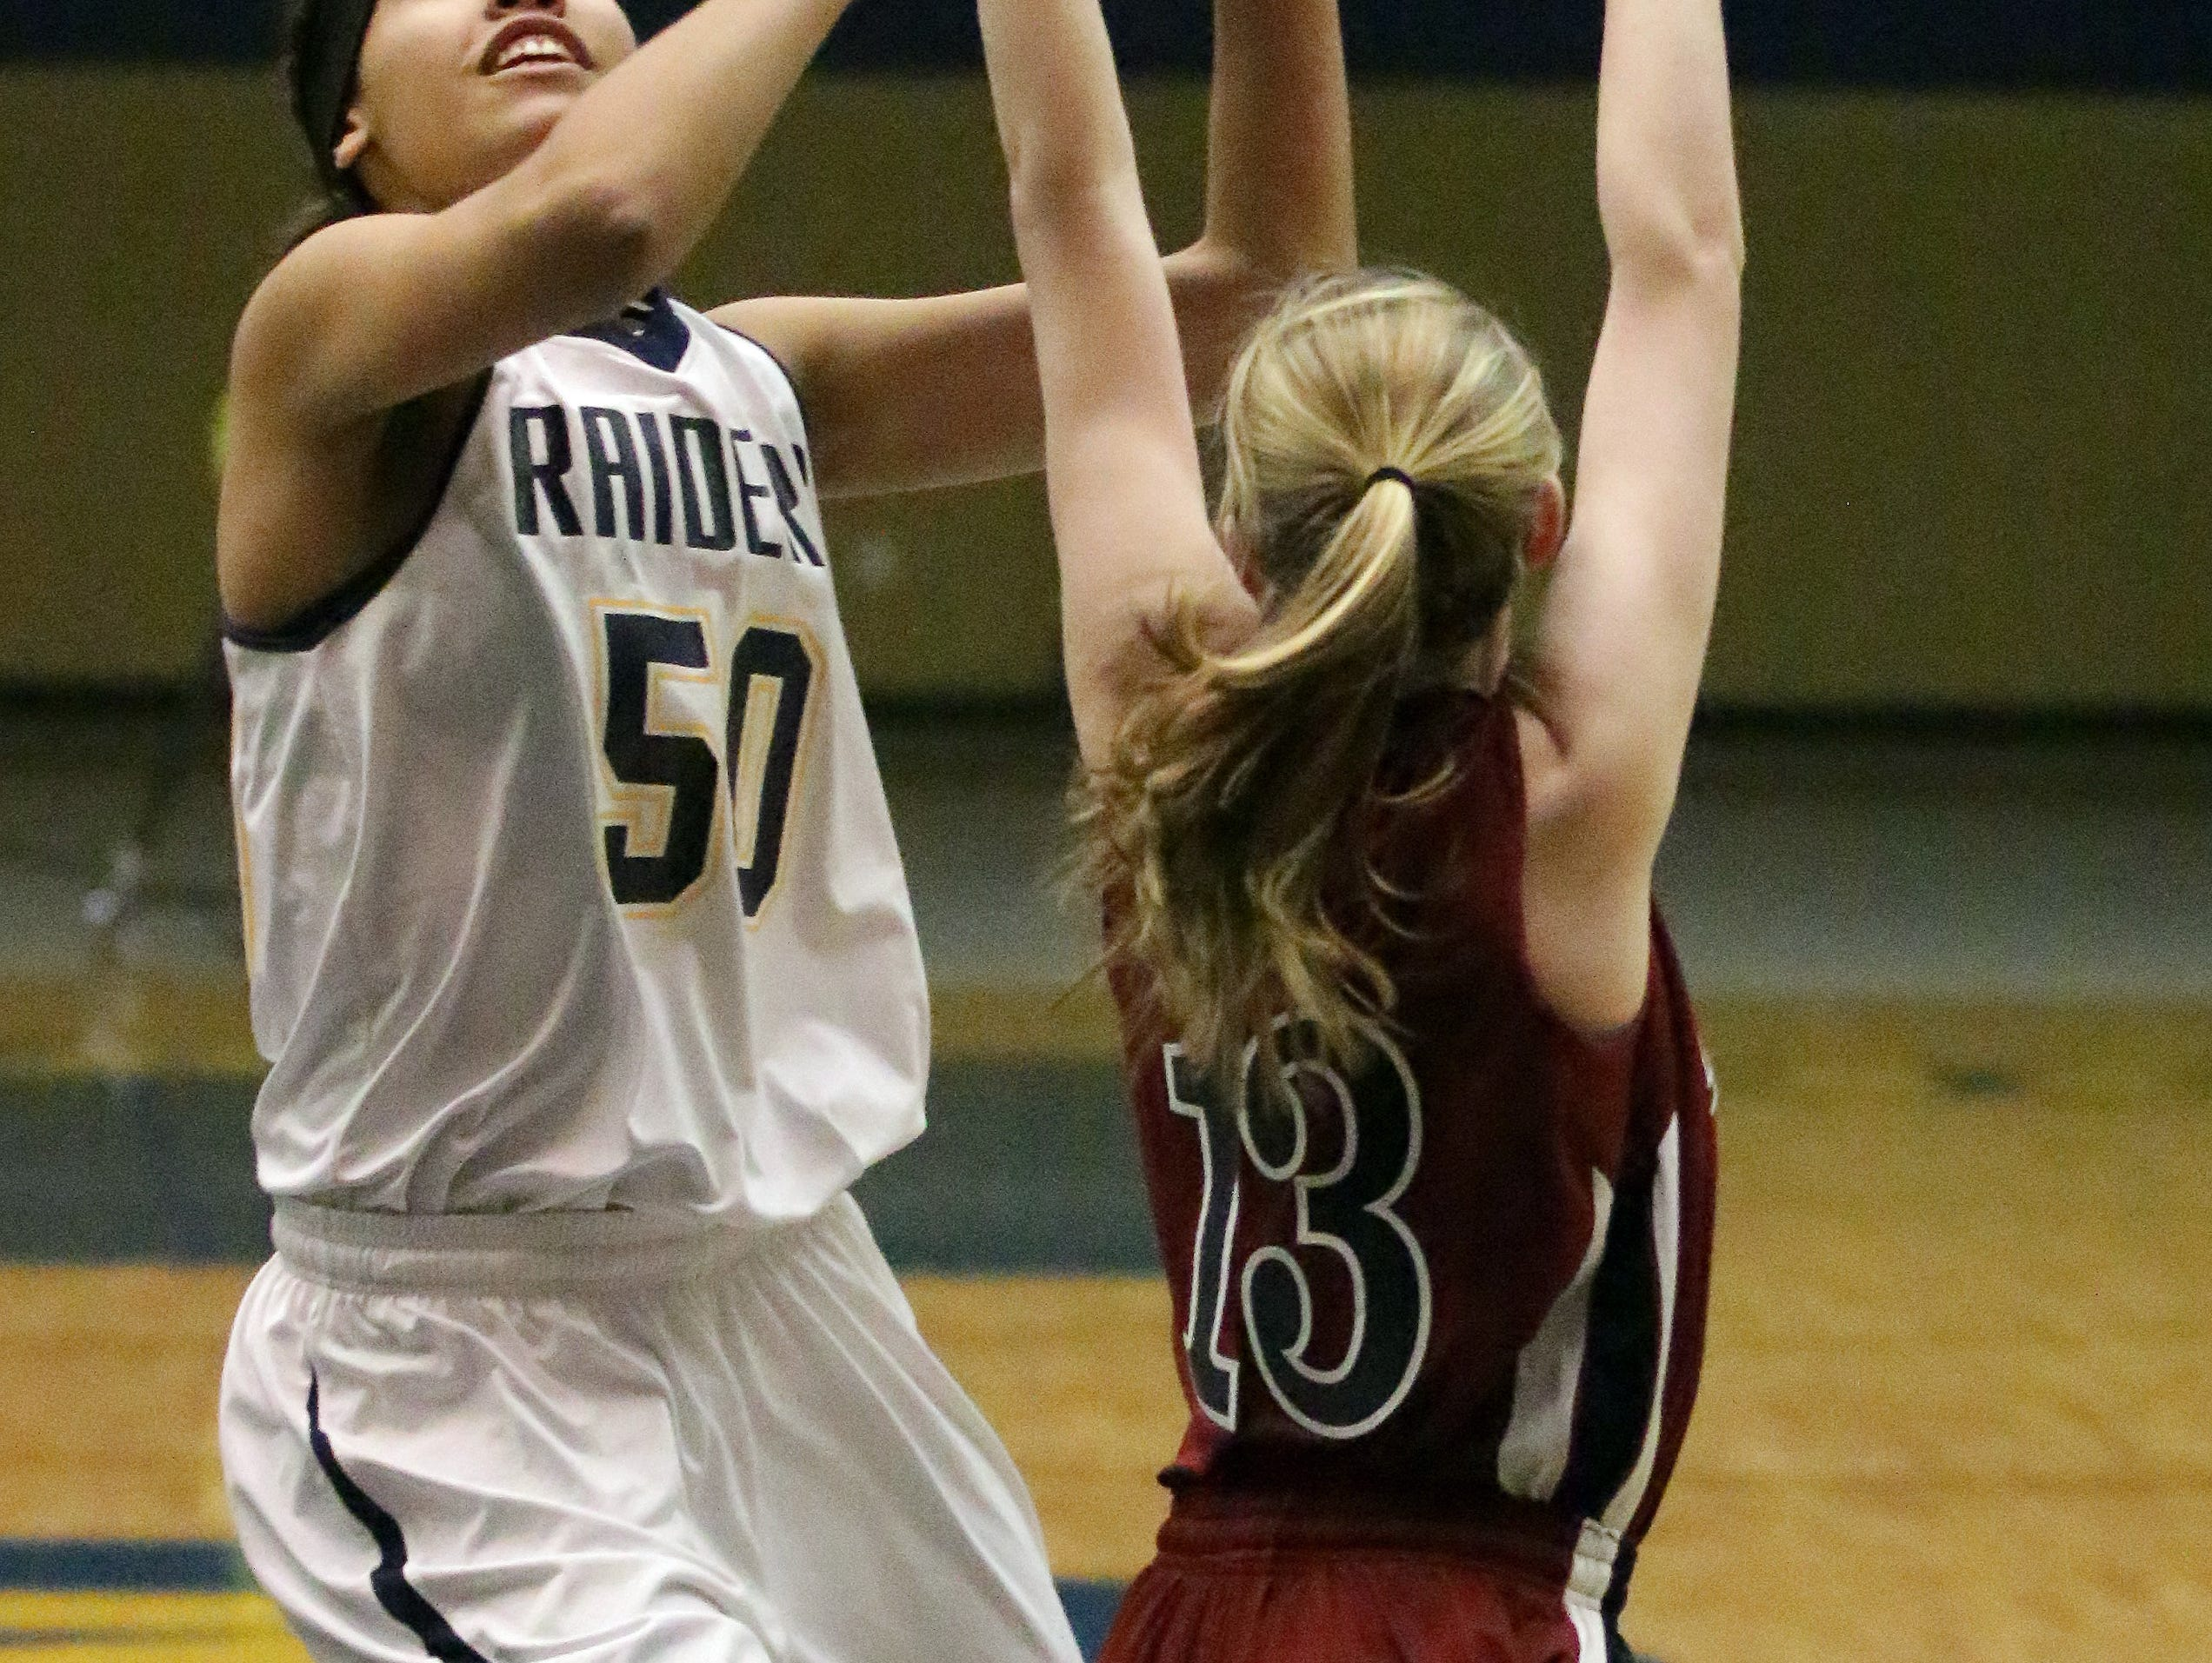 Junior center Kiara Dallmann (50) will be counted on to take on a bigger role with the Golden Raiders this year.